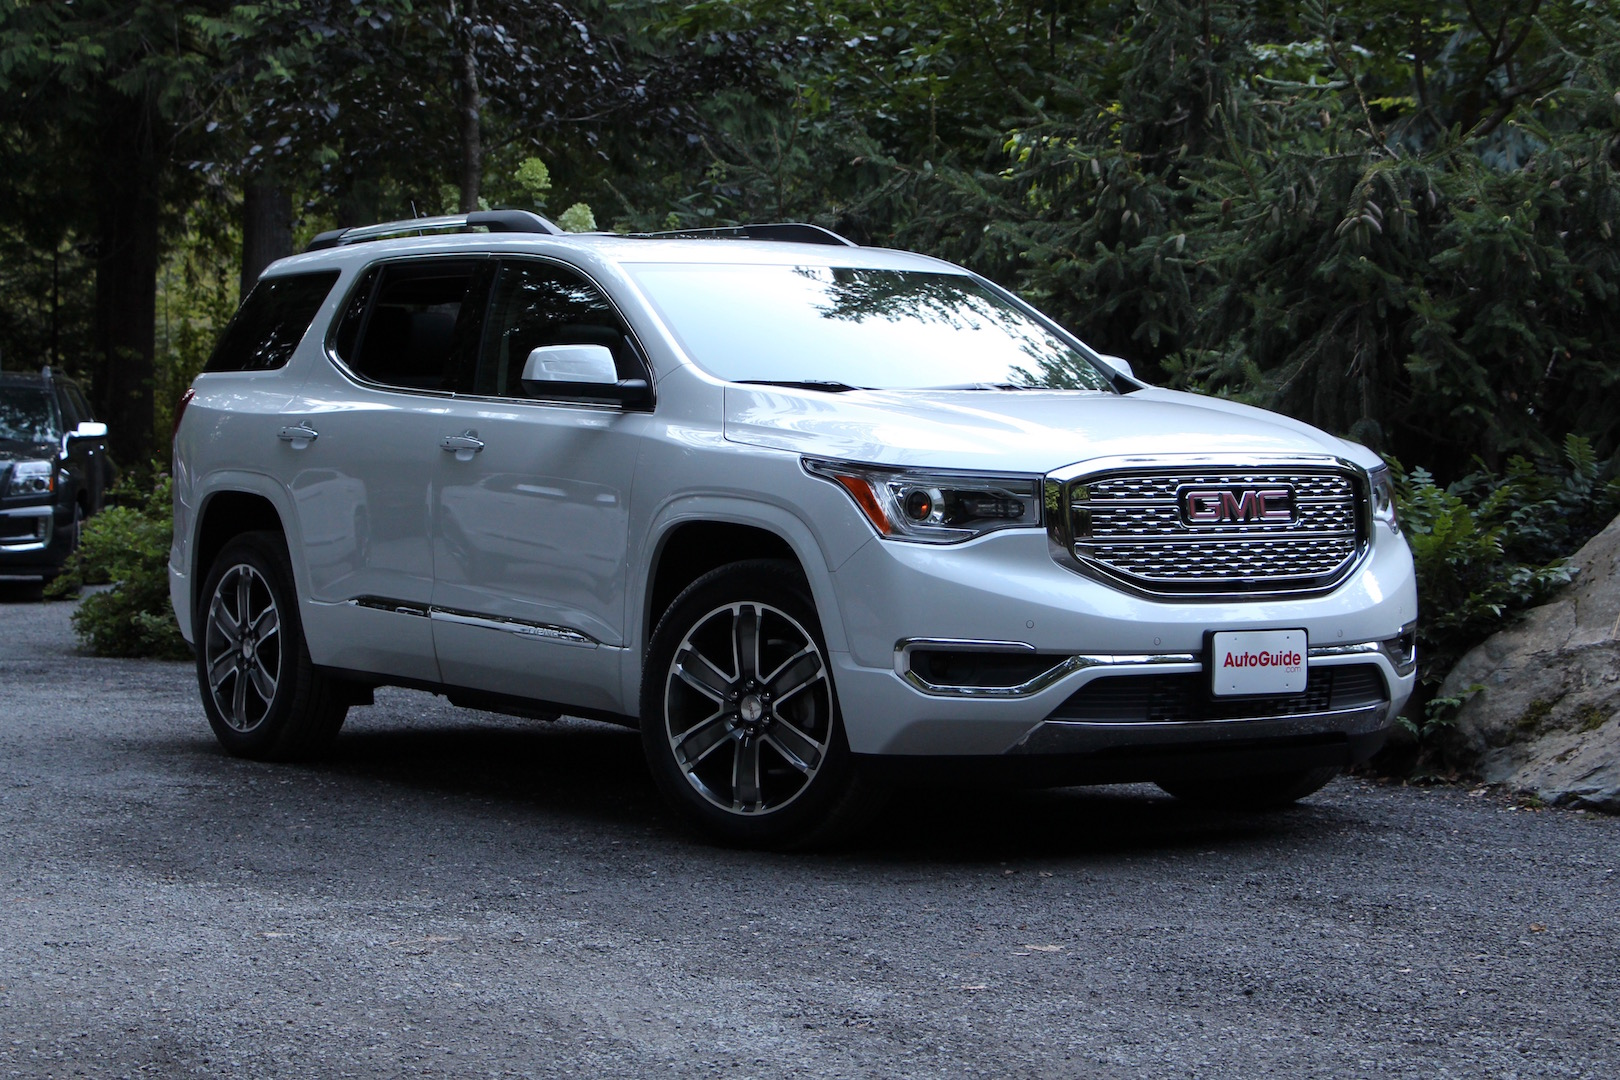 Gmc Acadia Used Car Review